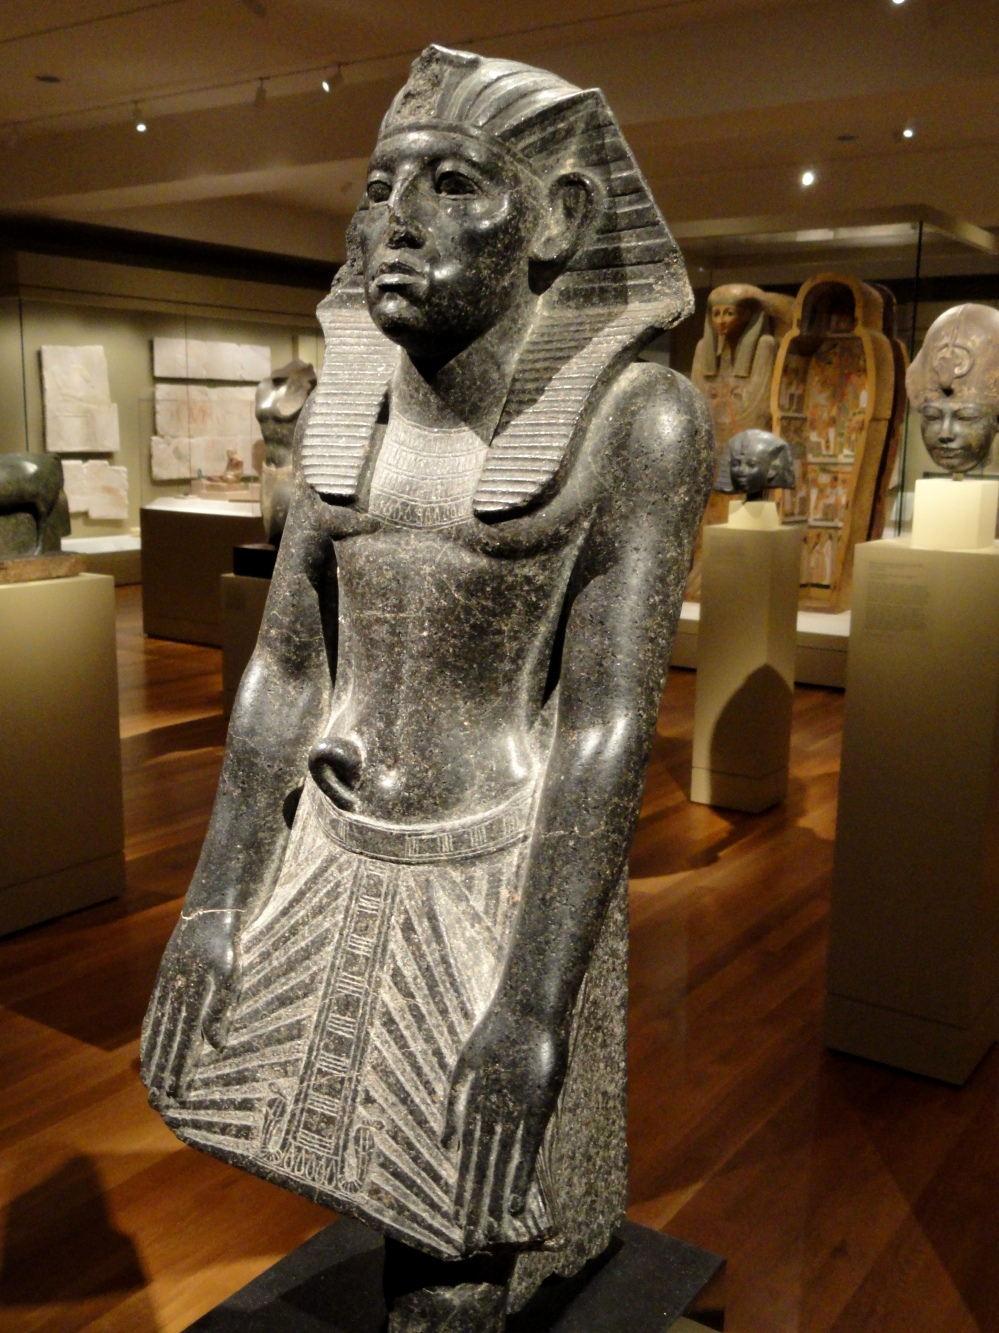 Statue_of_Amenemhat_III,_about_1859-1814_BC,_Middle_Kingdom,_Dynasty_12,_reign_of_Amenemhat_III,_granodiorite_-_Cleveland_Museum_of_Art_-_DSC08649